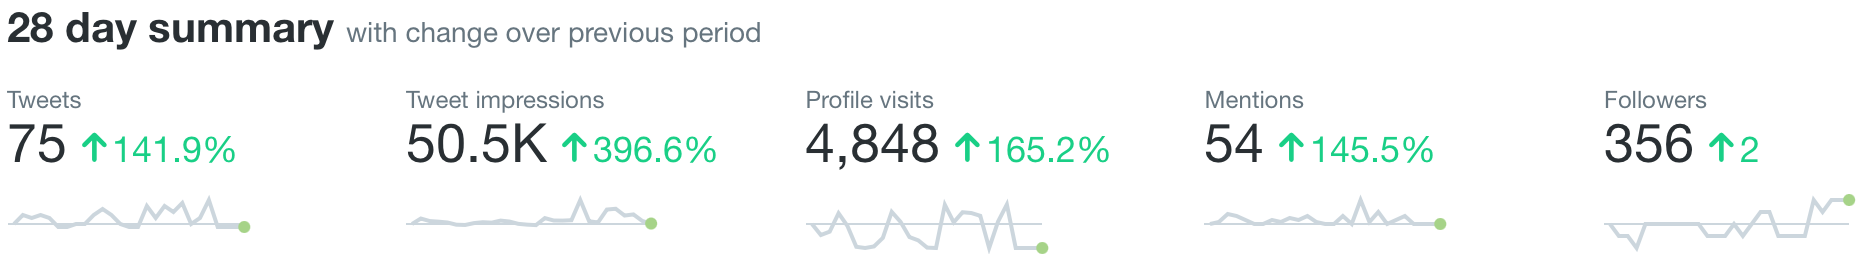 A screenshot of my Twitter analytics for April 2021. It shows 75 tweets, 50,000 tweet impressions, 4,800 profile visits, 54 mentions, and 356 followers (2 more than last month).